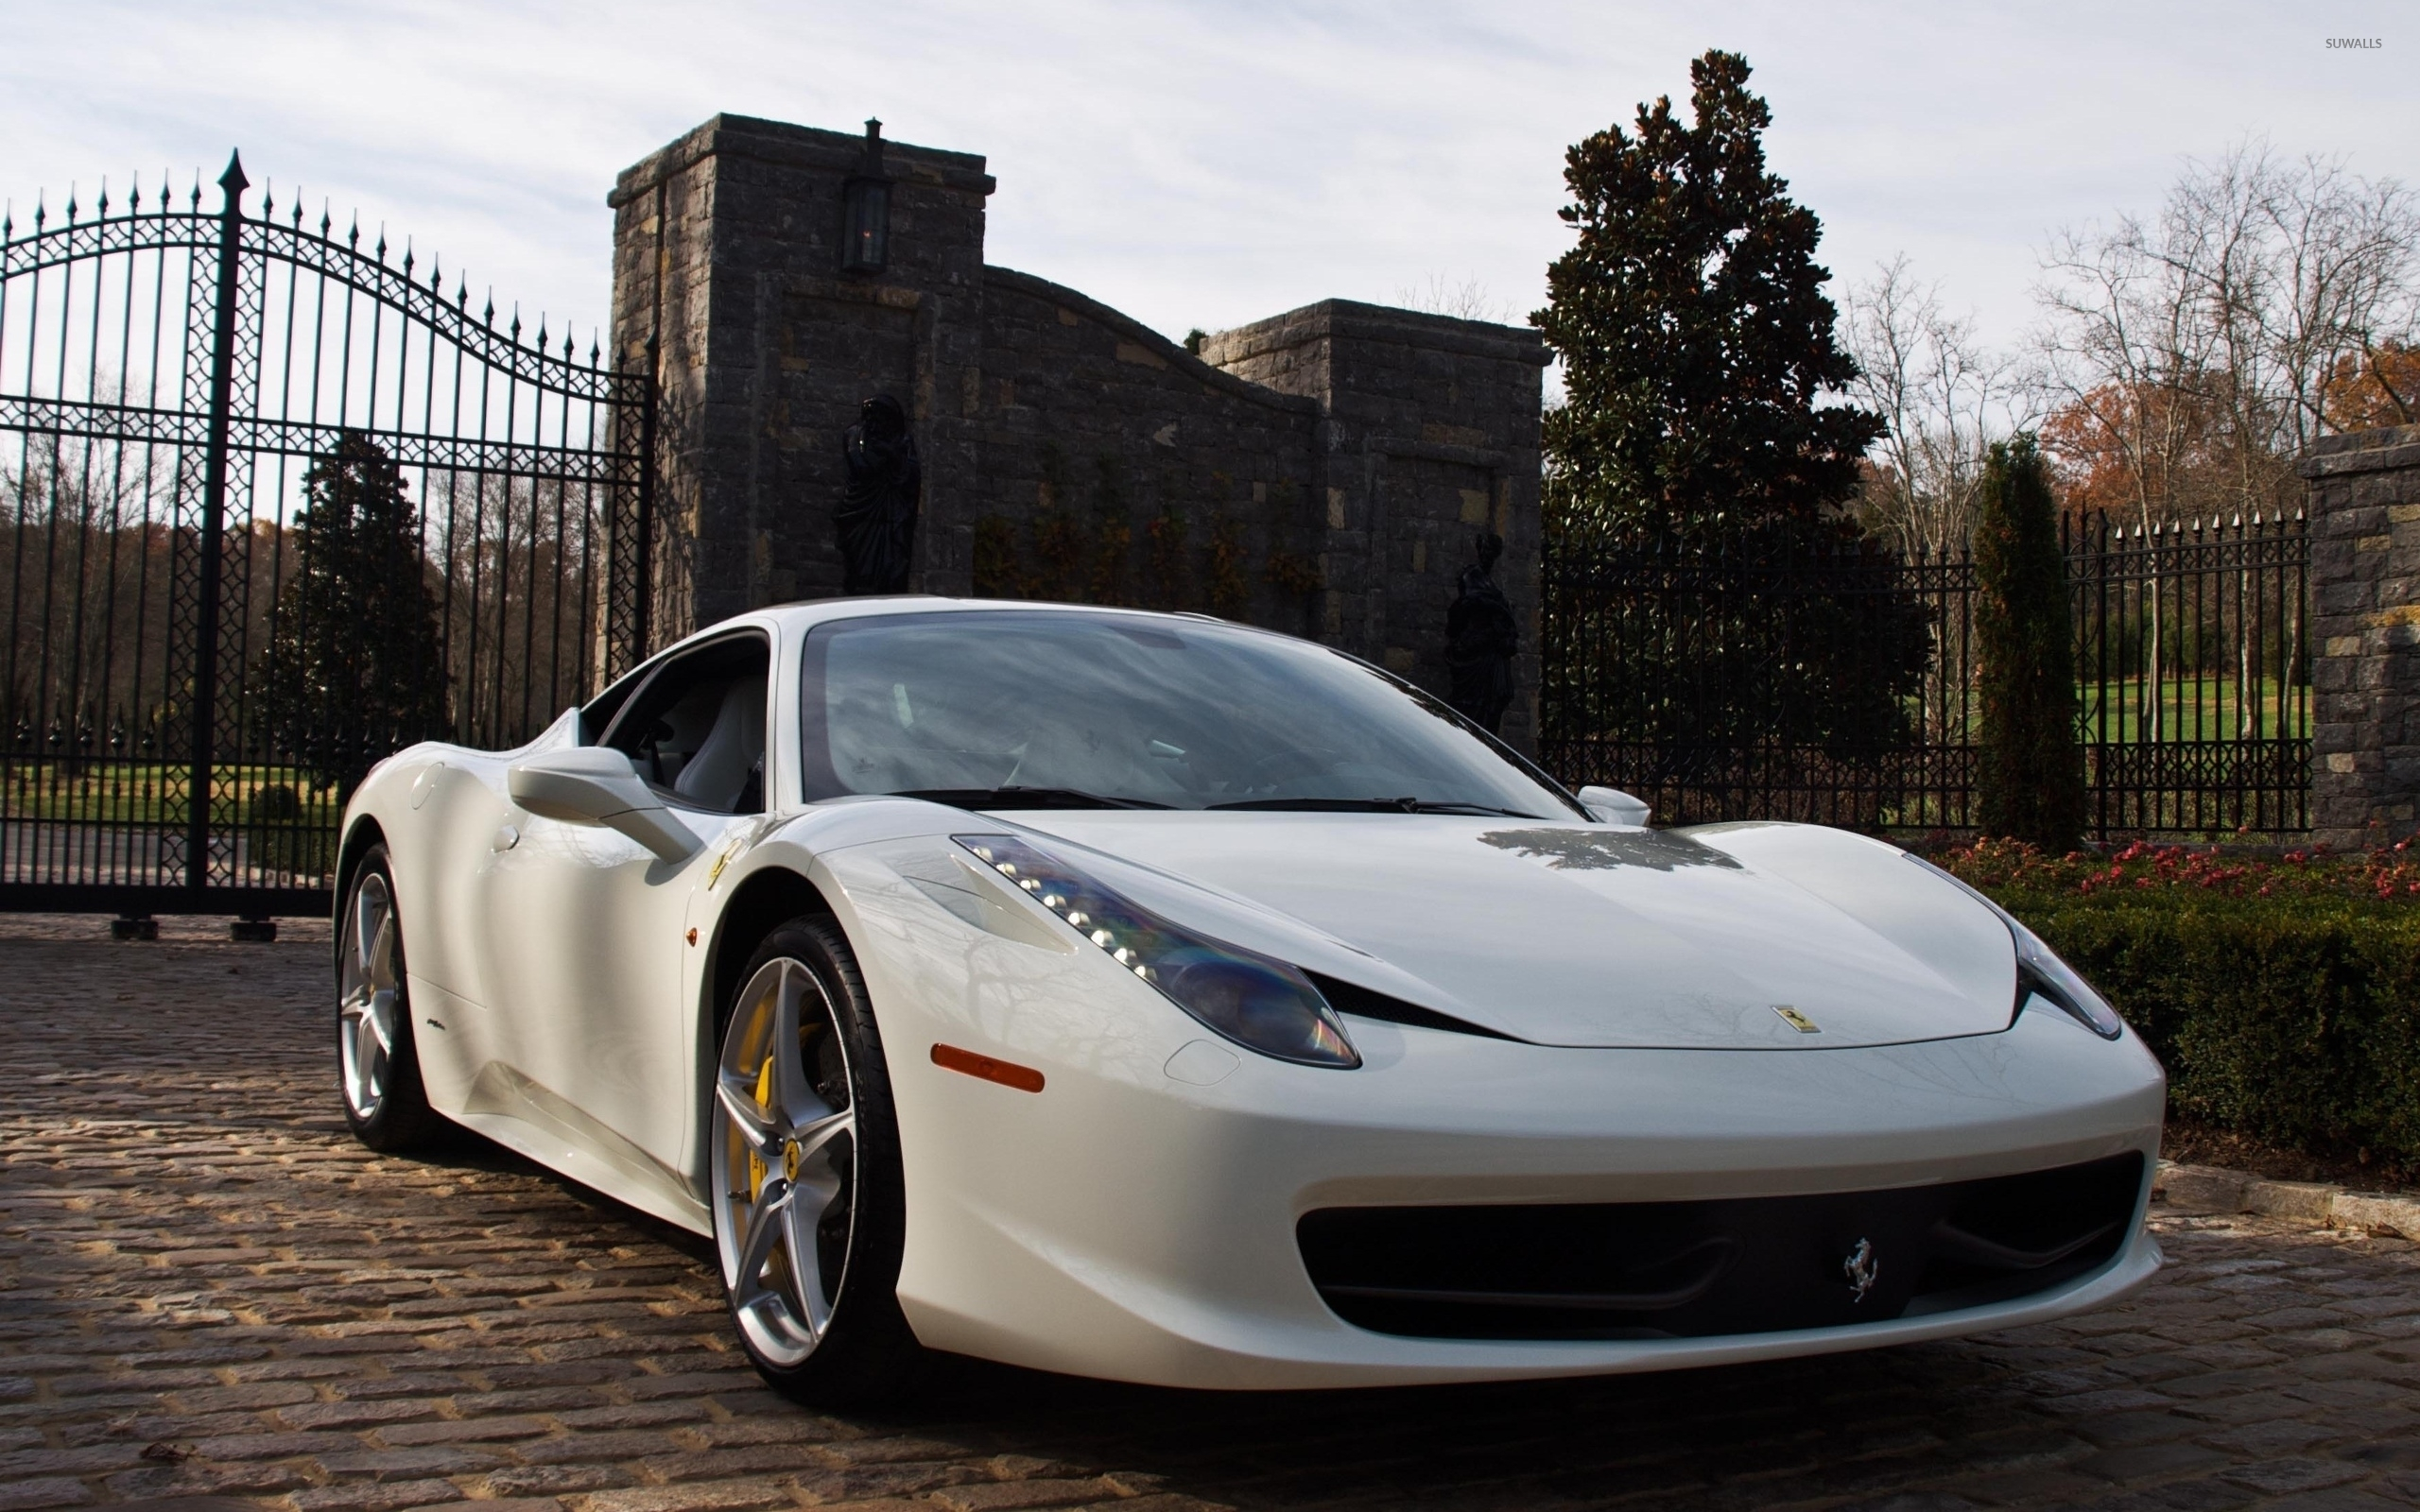 White Ferrari 458 Italia in the garden wallpaper - Car ...